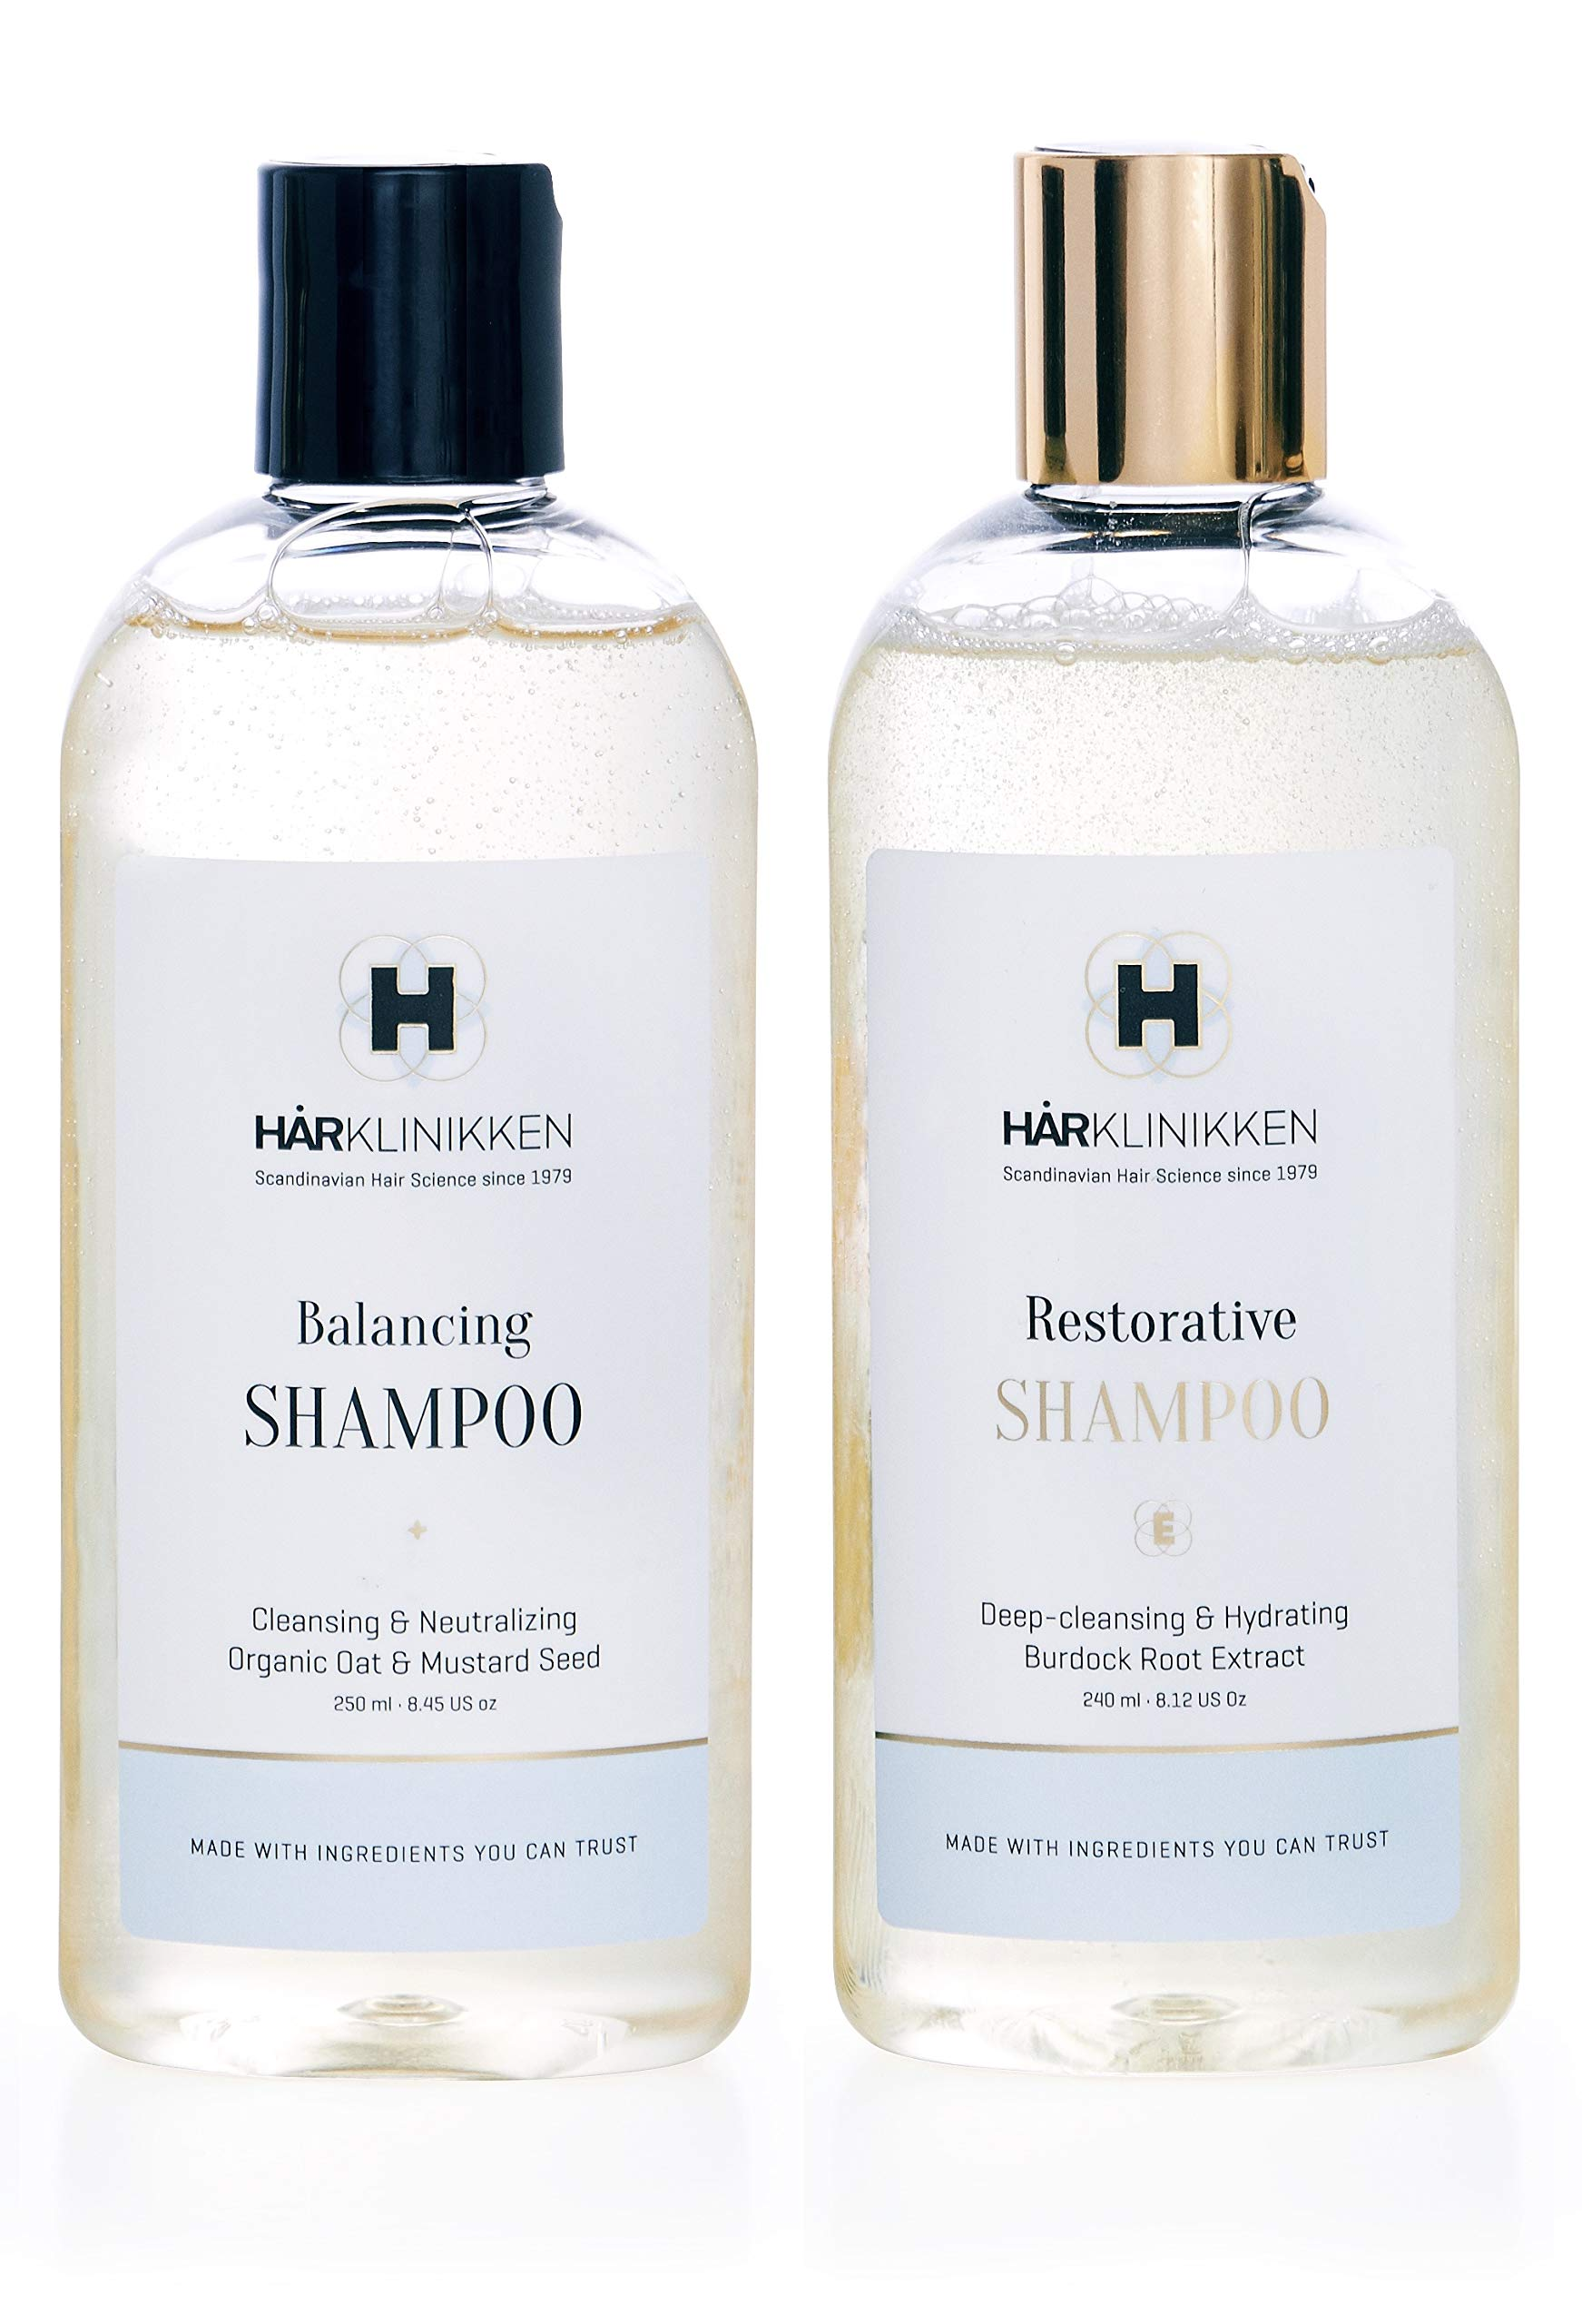 Harklinikken Advanced Cleansing & Treatment Set | 8.45 Oz. Balancing Shampoo & 8.45 Oz Restorative Shampoo | When washing daily: Alternate Product - For All Hair Types - Natural & Plant-Based by Harklinikken (Image #1)